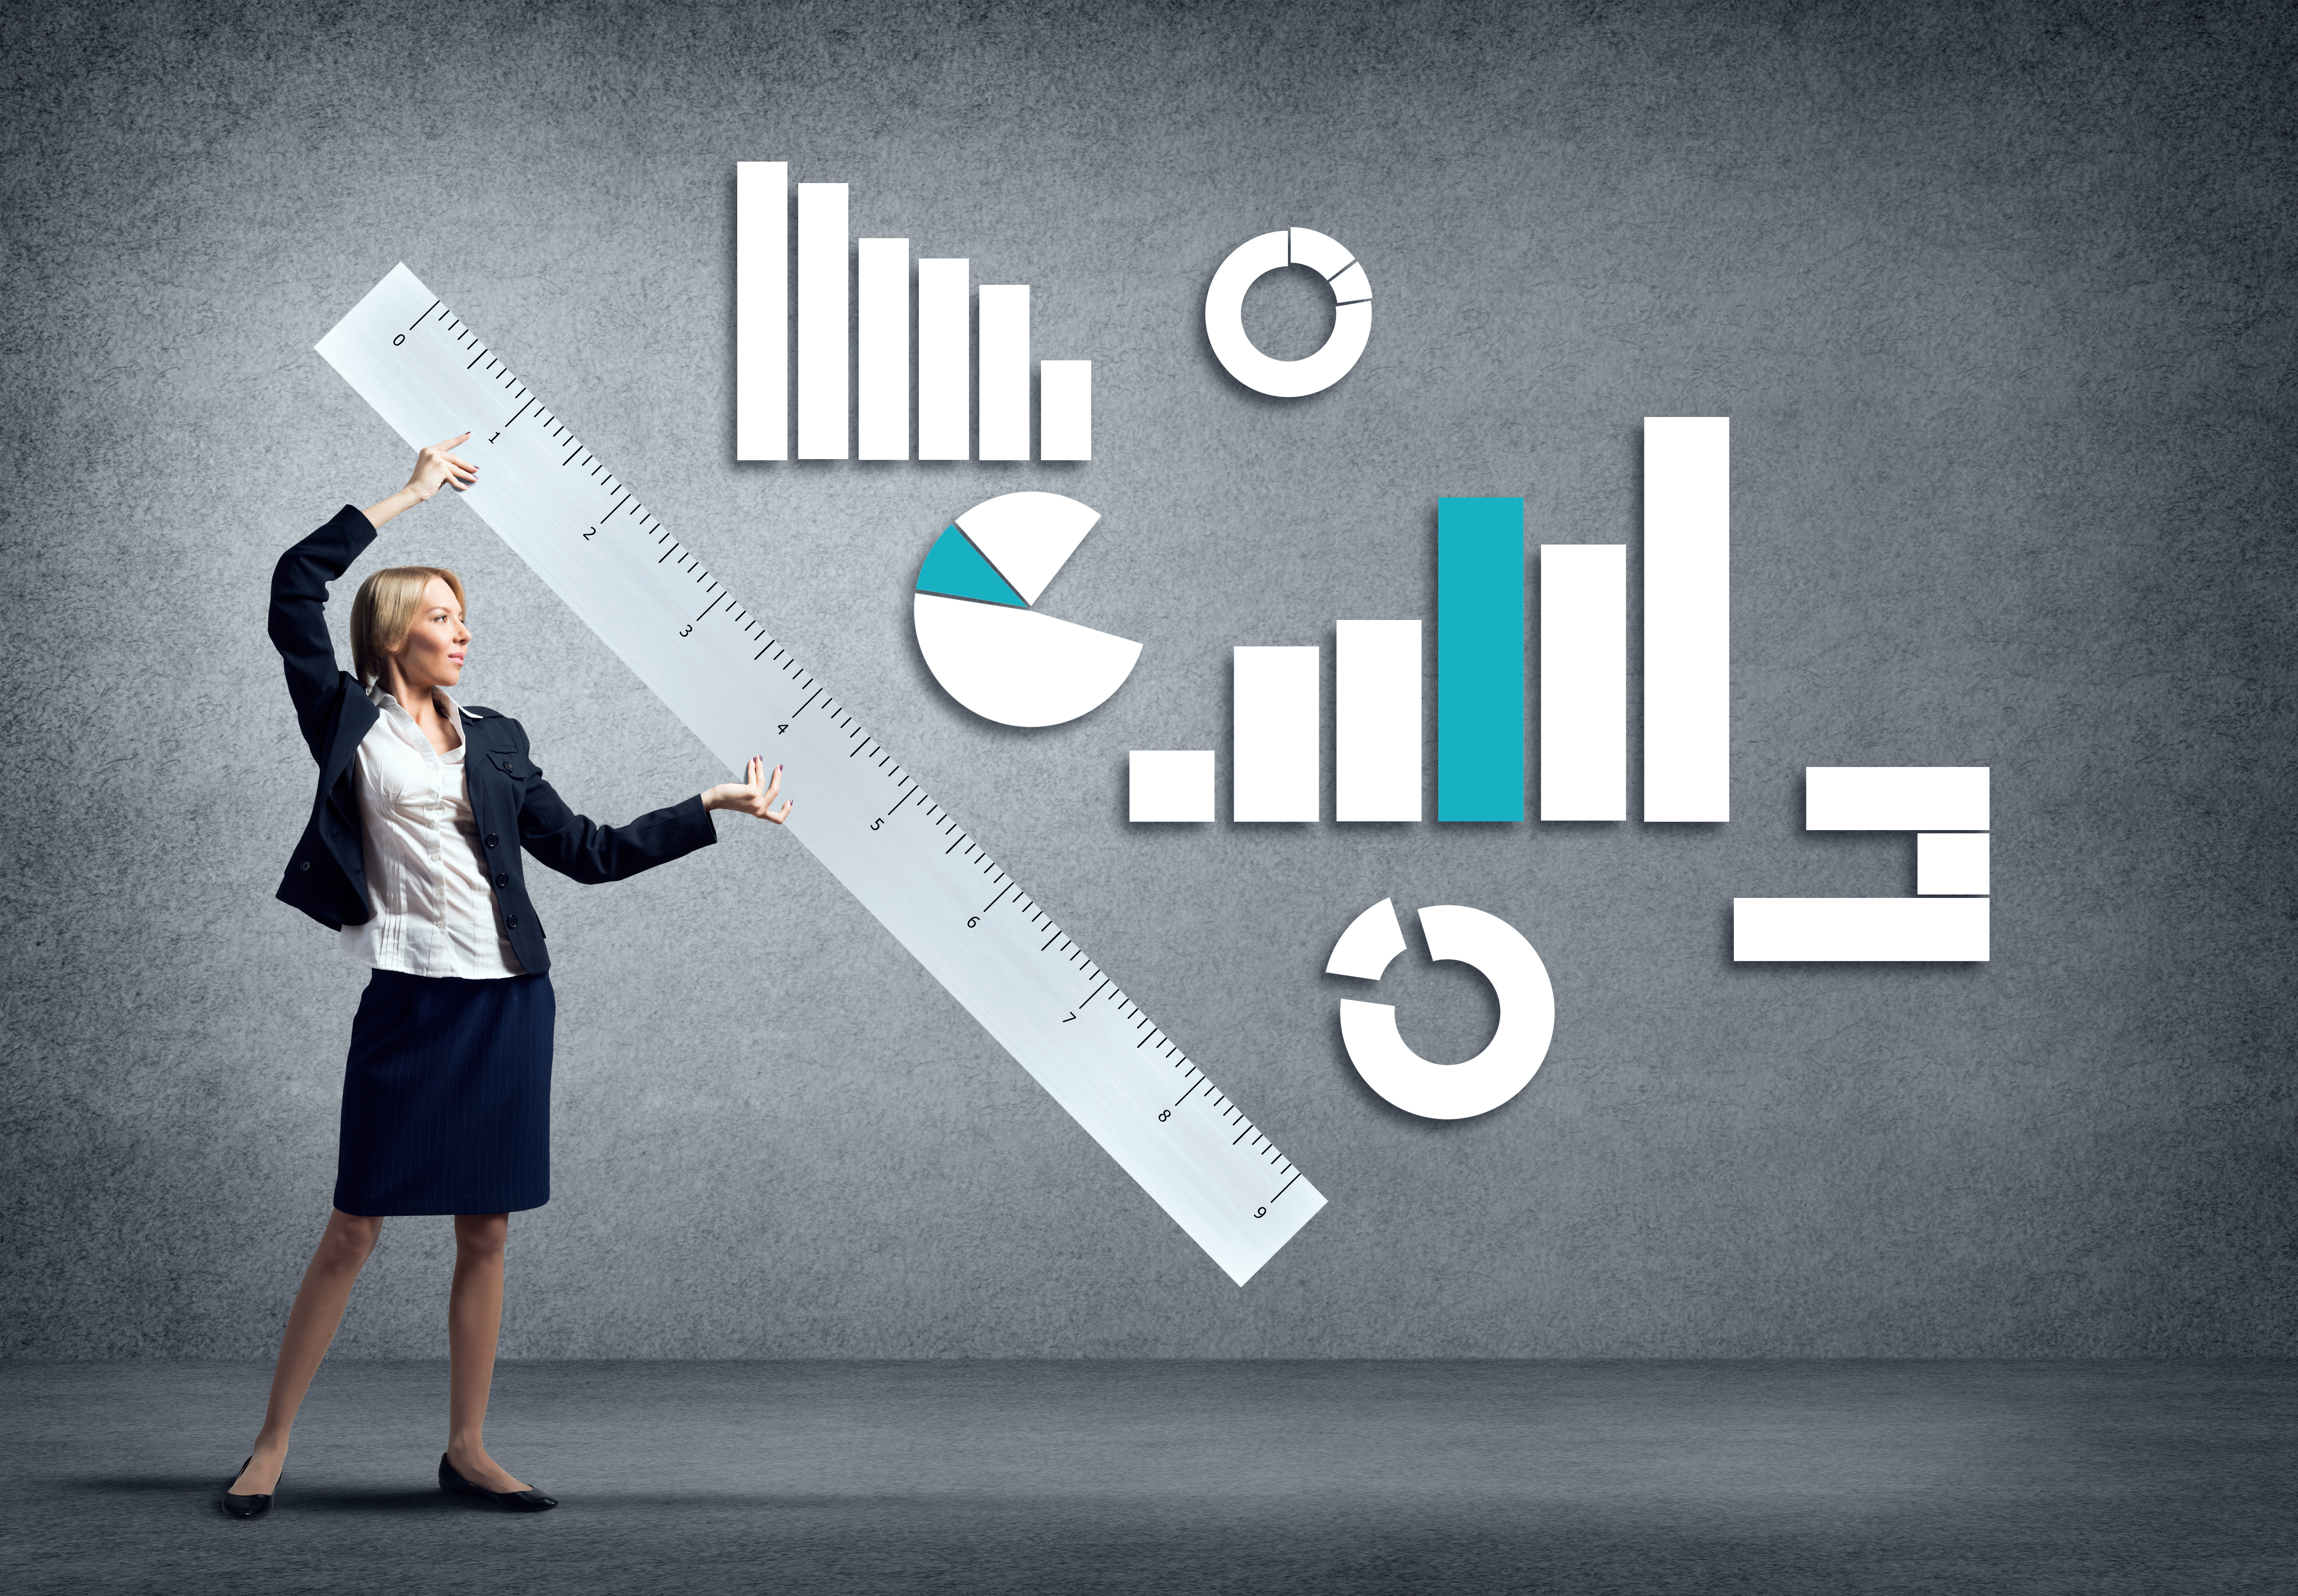 3 Metrics for your Marketing Score Board